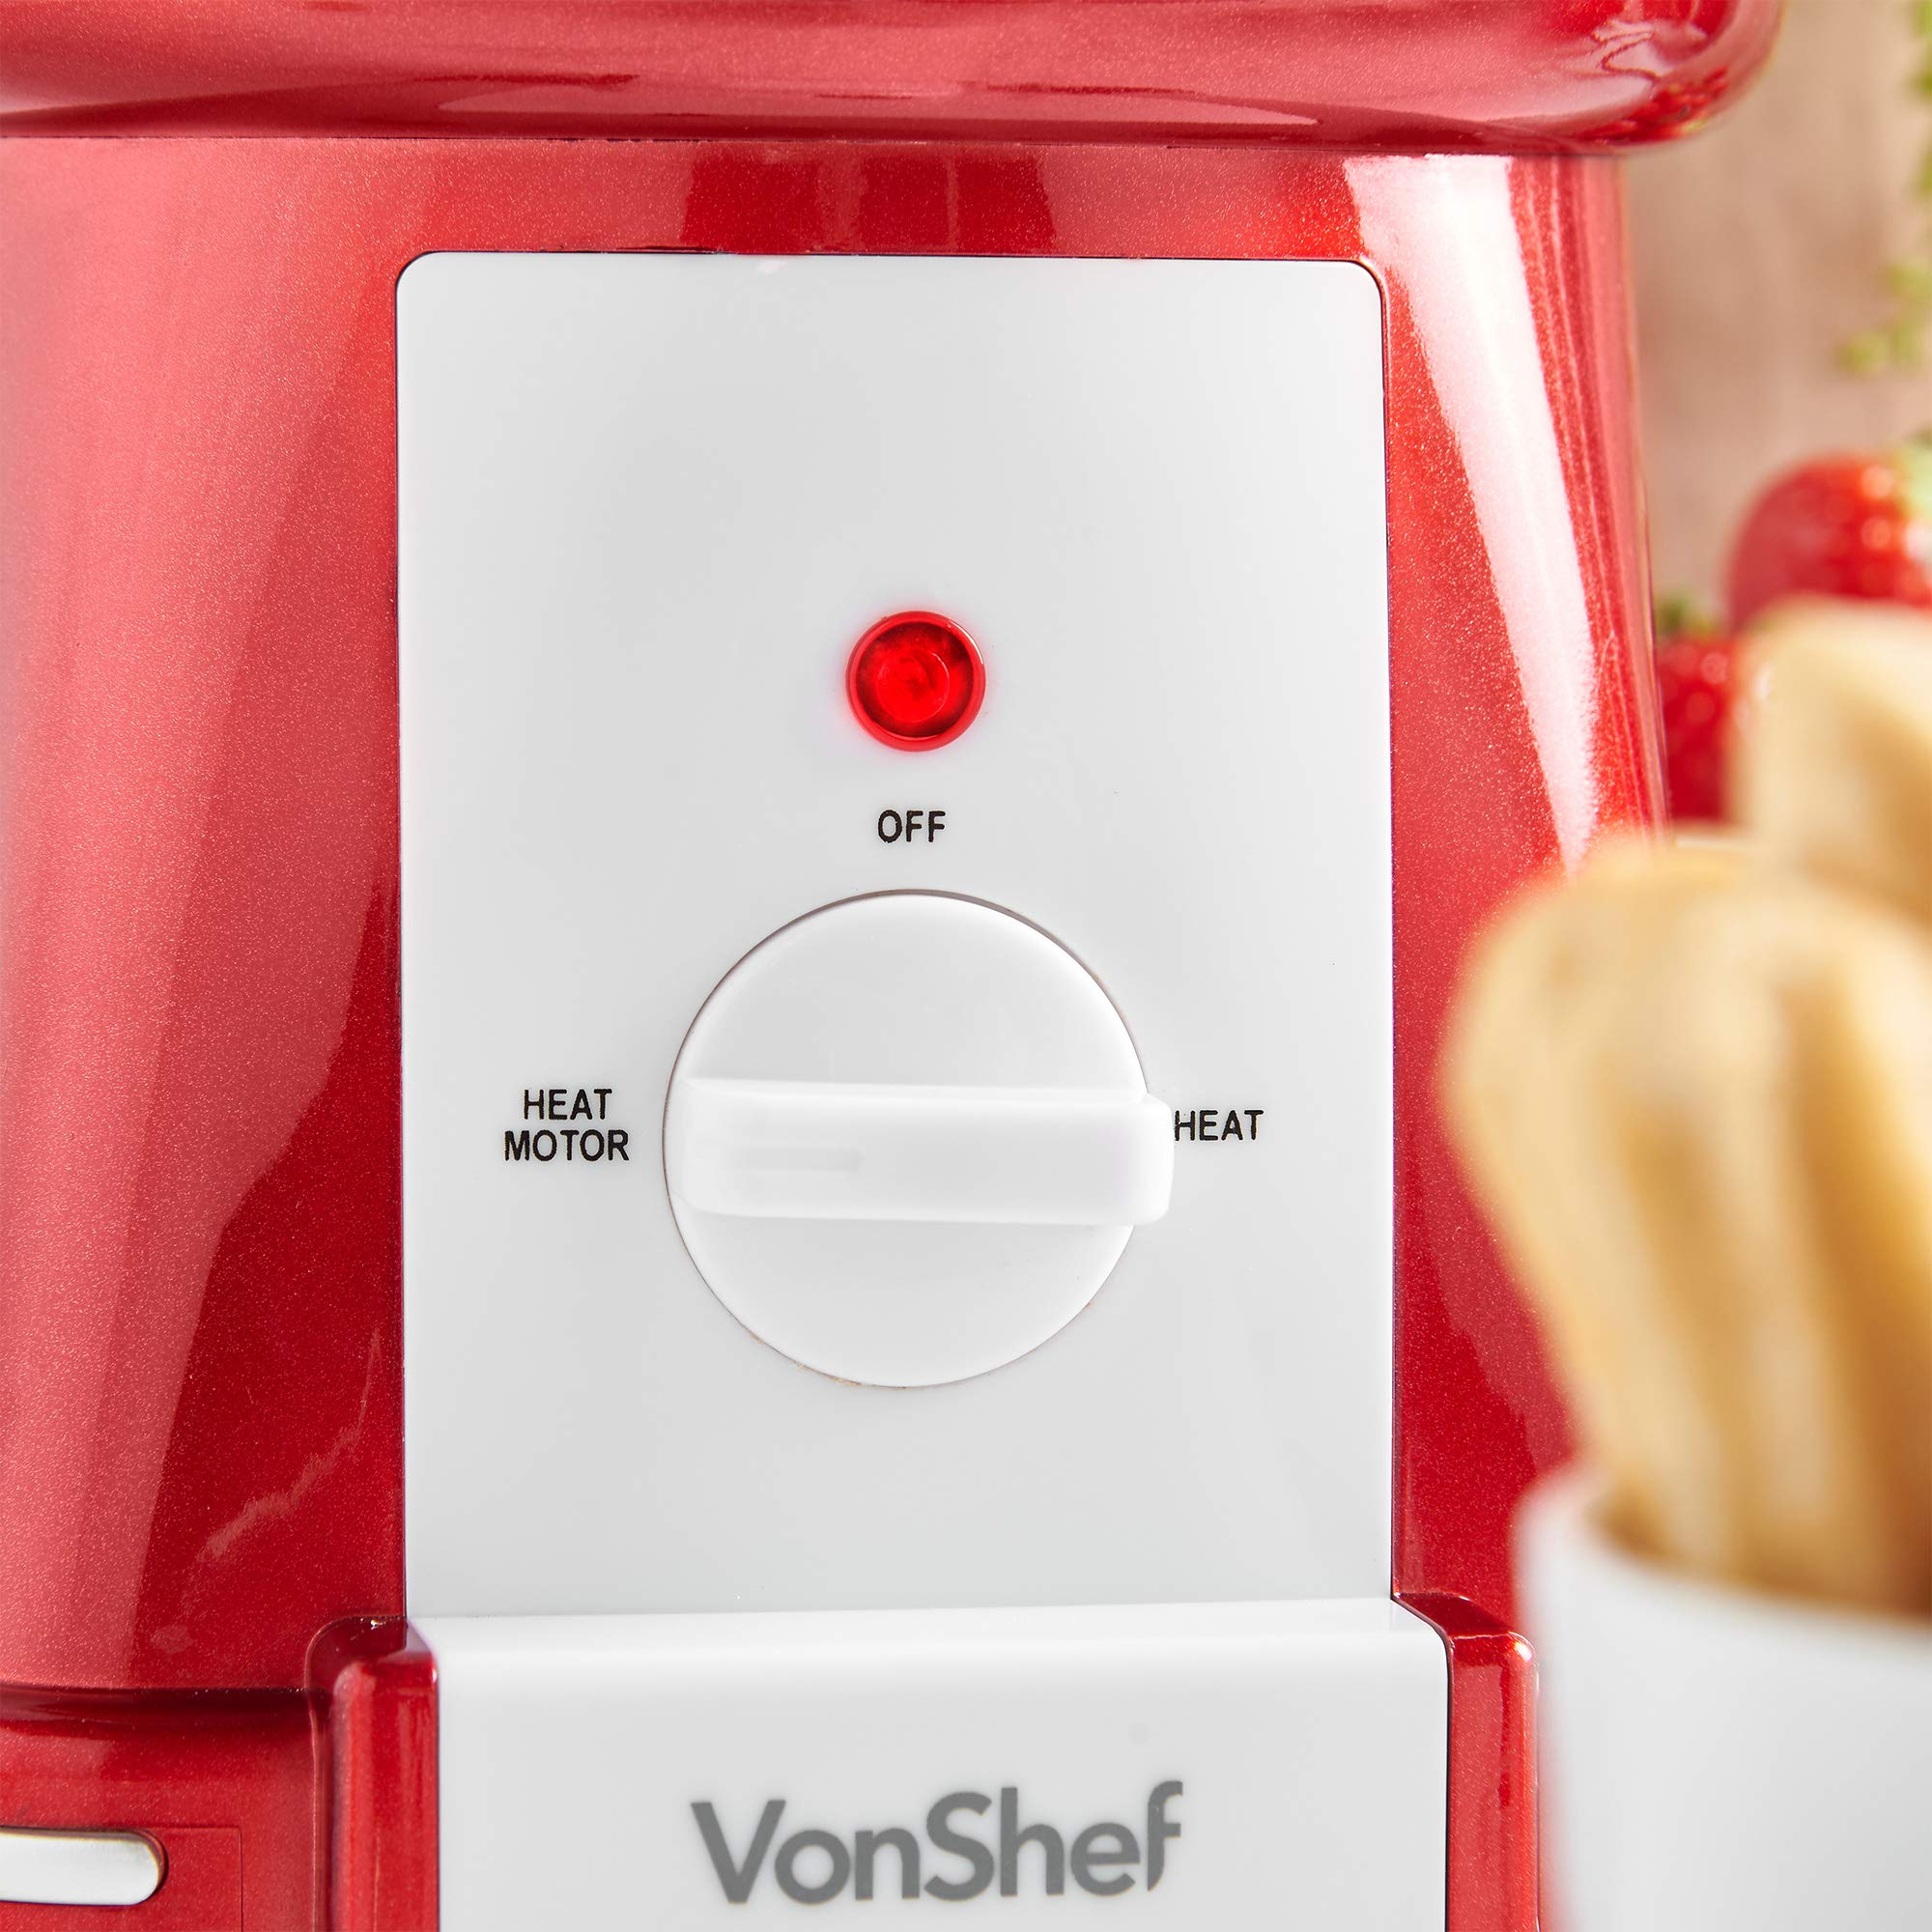 VonShef Retro Electric Chocolate Fountain Machine – 3 Tier Chocolate Fondue Maker with Quiet Motor for Dessert/Dipping for Parties, Weddings by VonShef (Image #8)